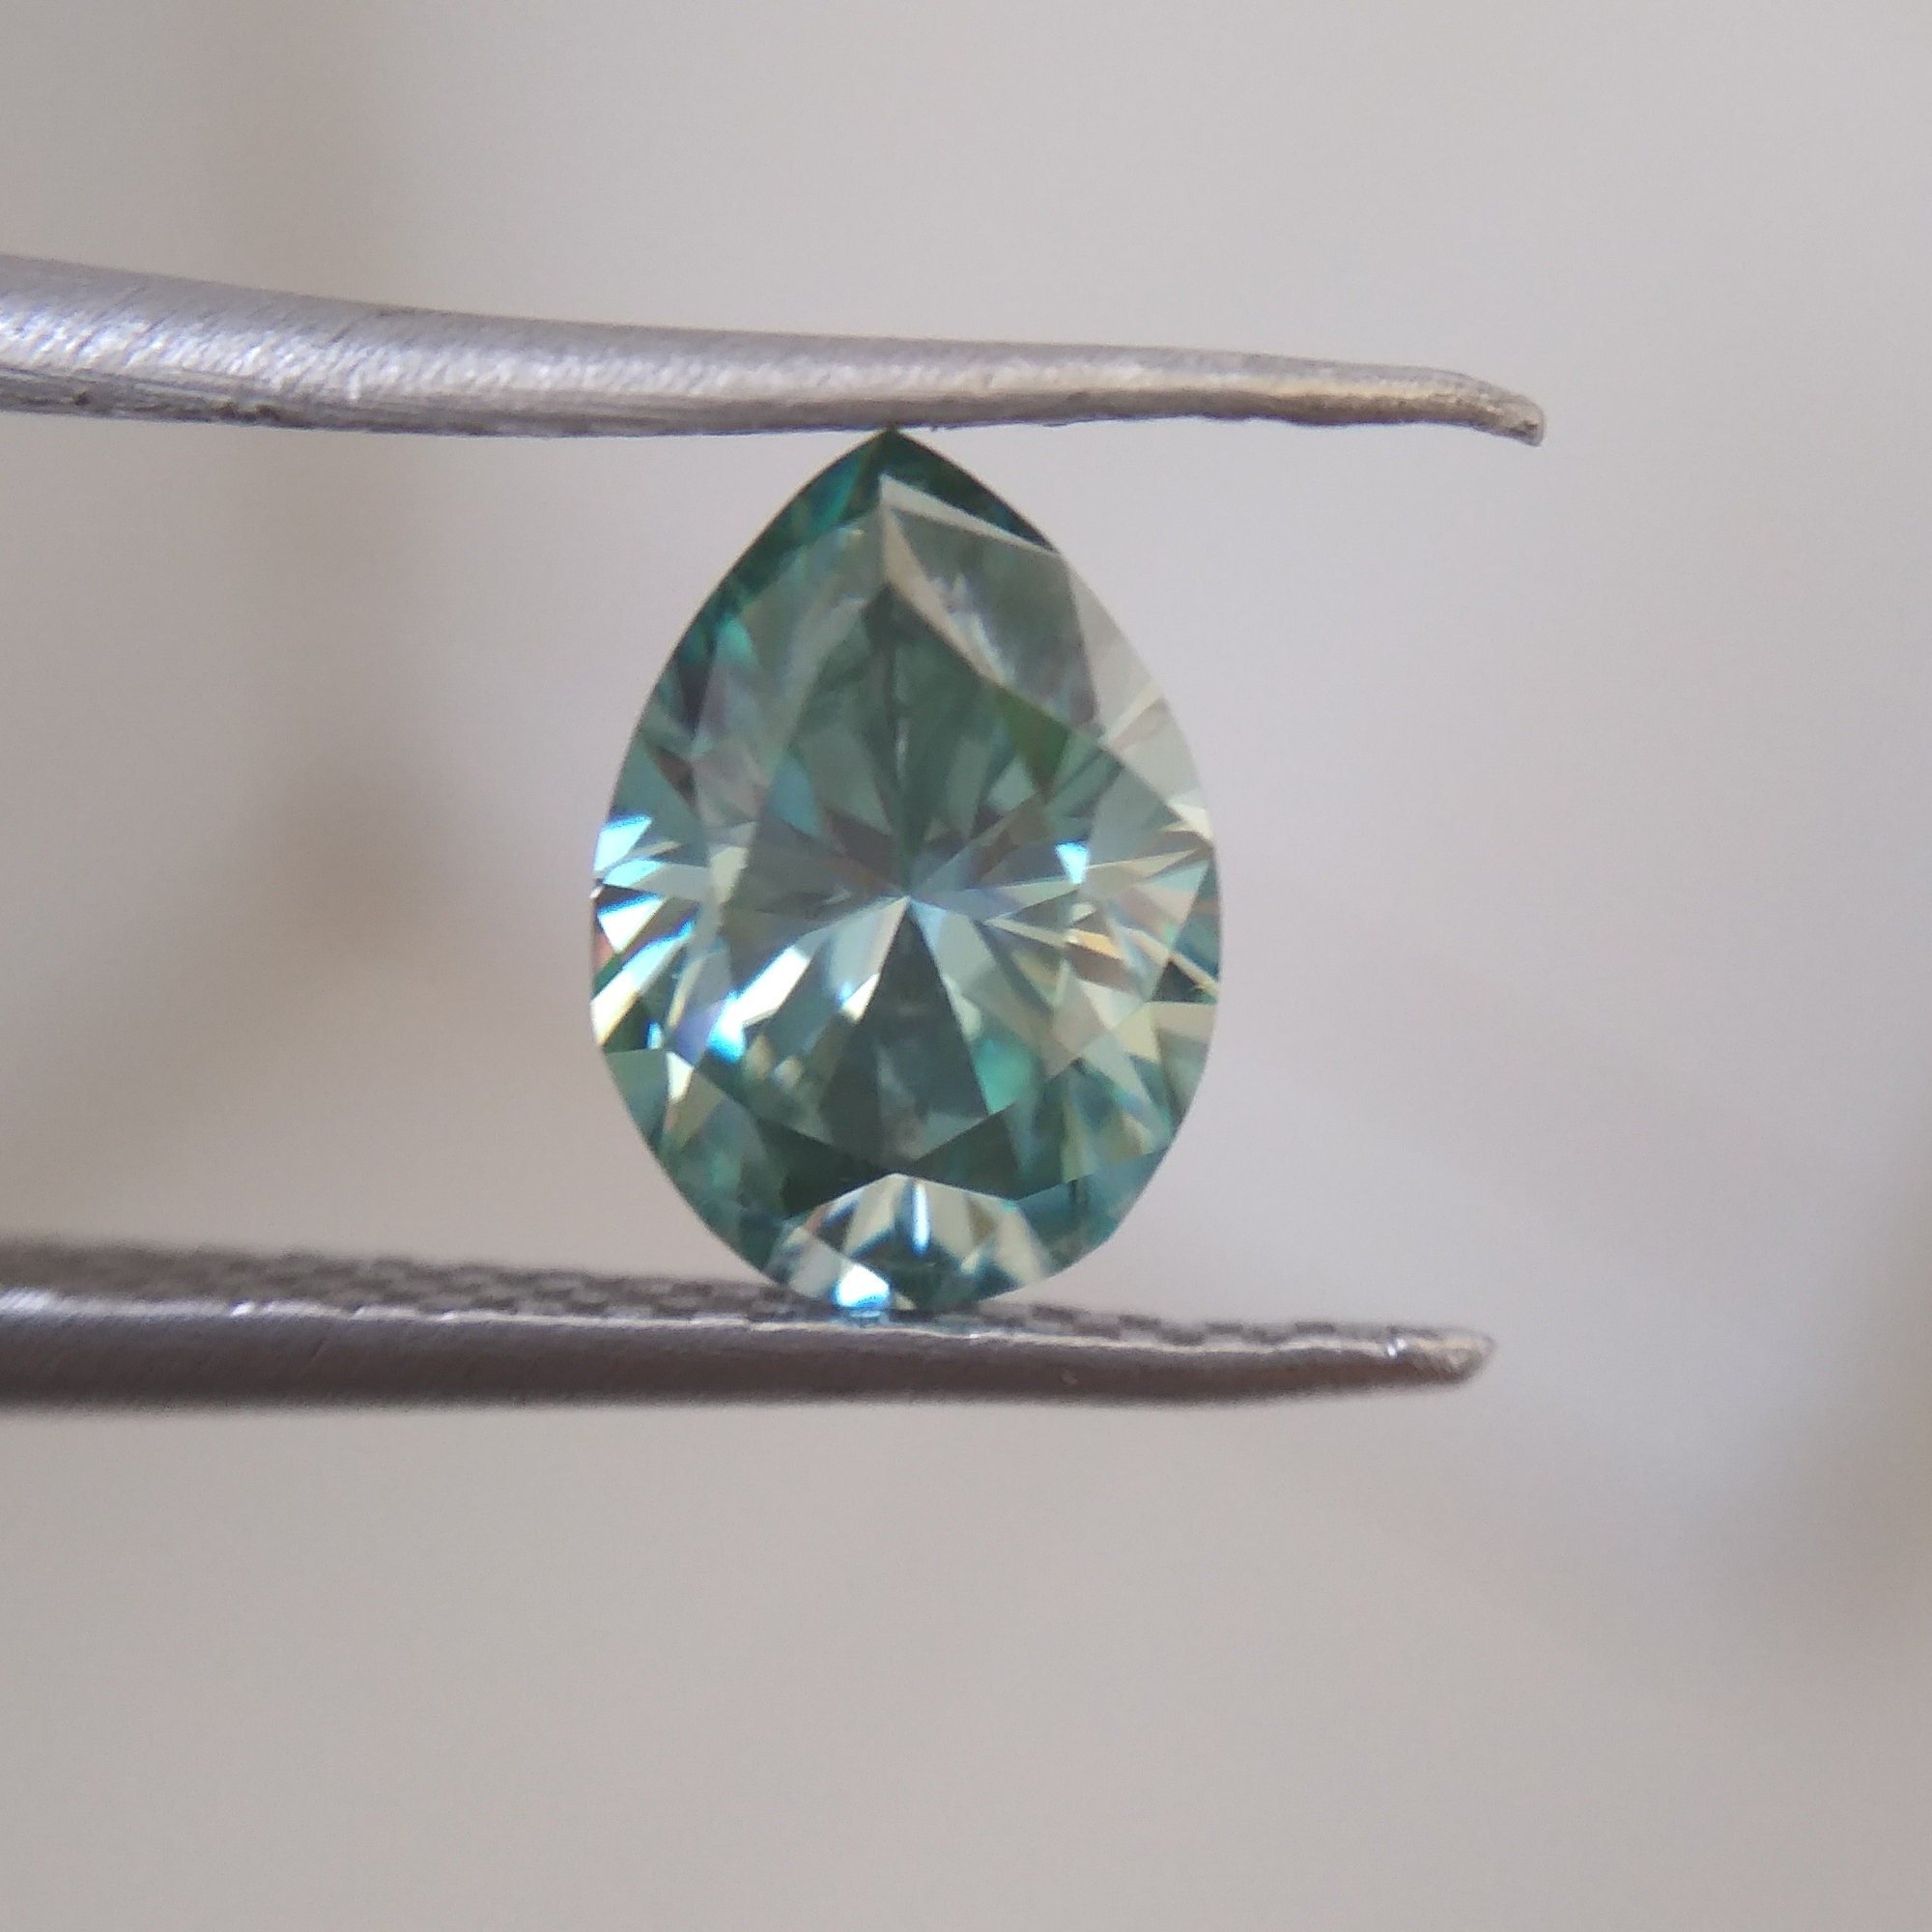 Loose Moissanite Light Pink Color 5.00 CT Emerald Fancy Cut for ring VVS1